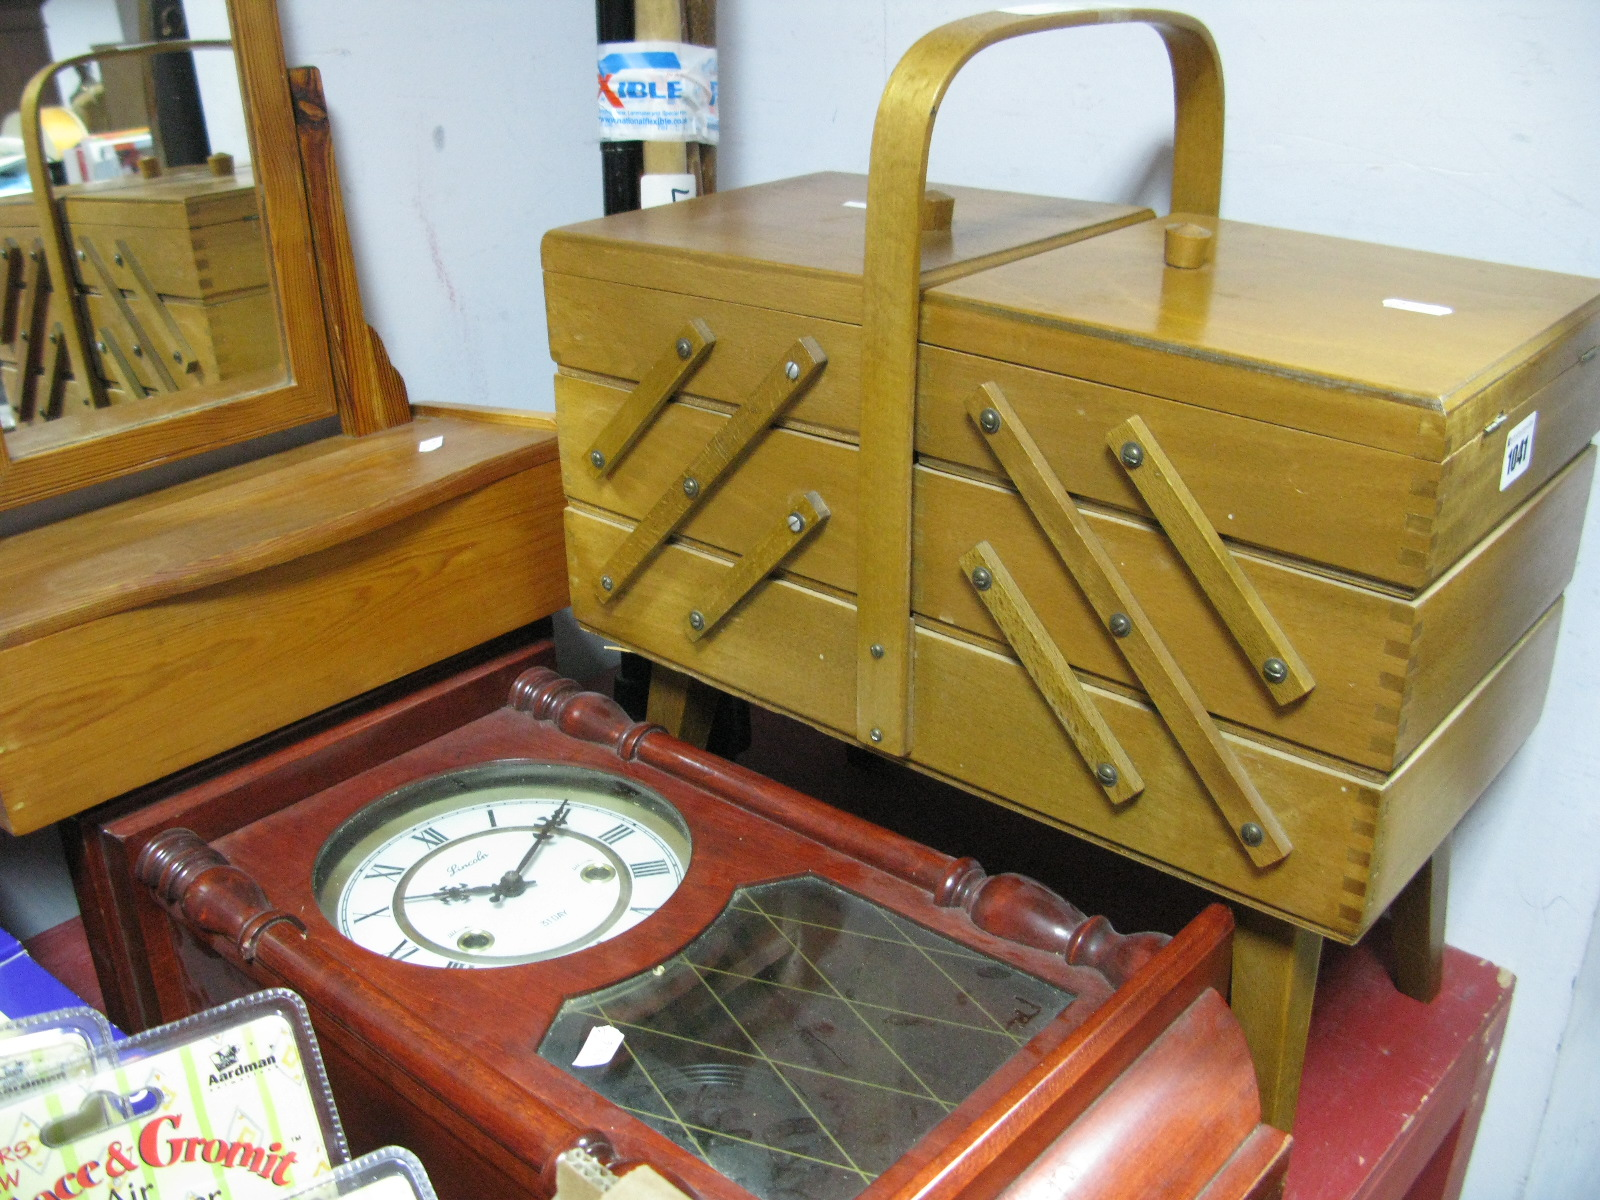 Lot 1041 - A Sewing Box and Contents, pine bathroom mirror, stained wood wall clock and a quantity of walking